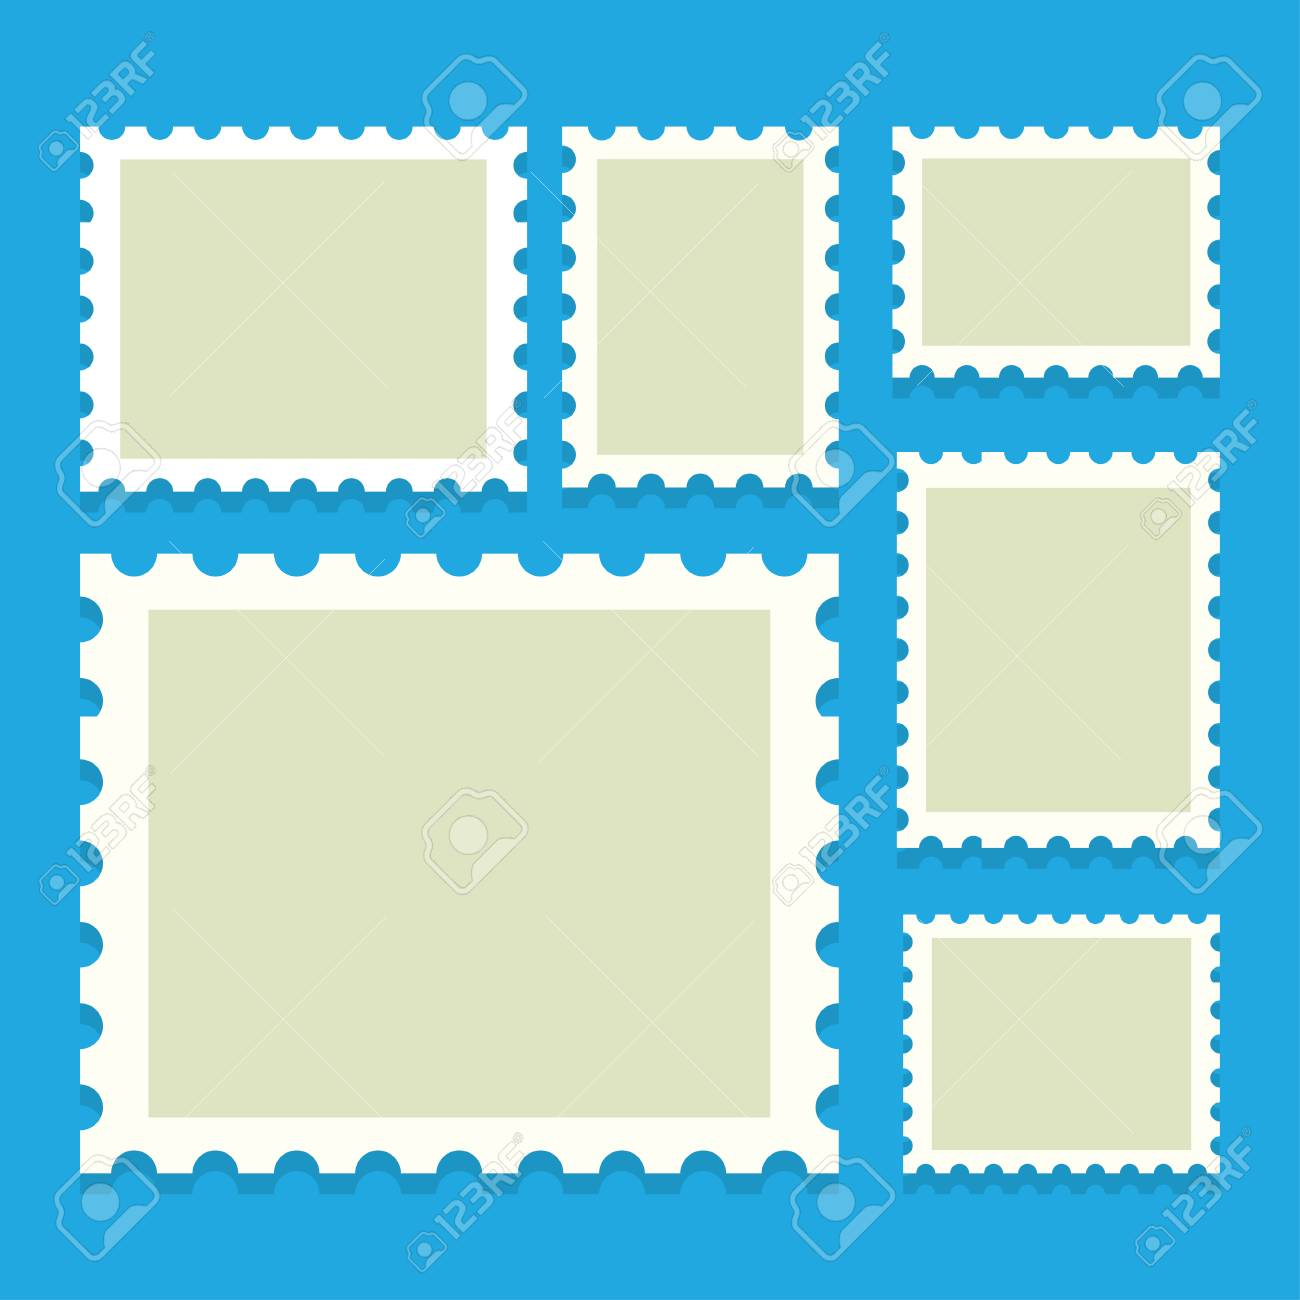 blank postage stamps templates with place for your images vector